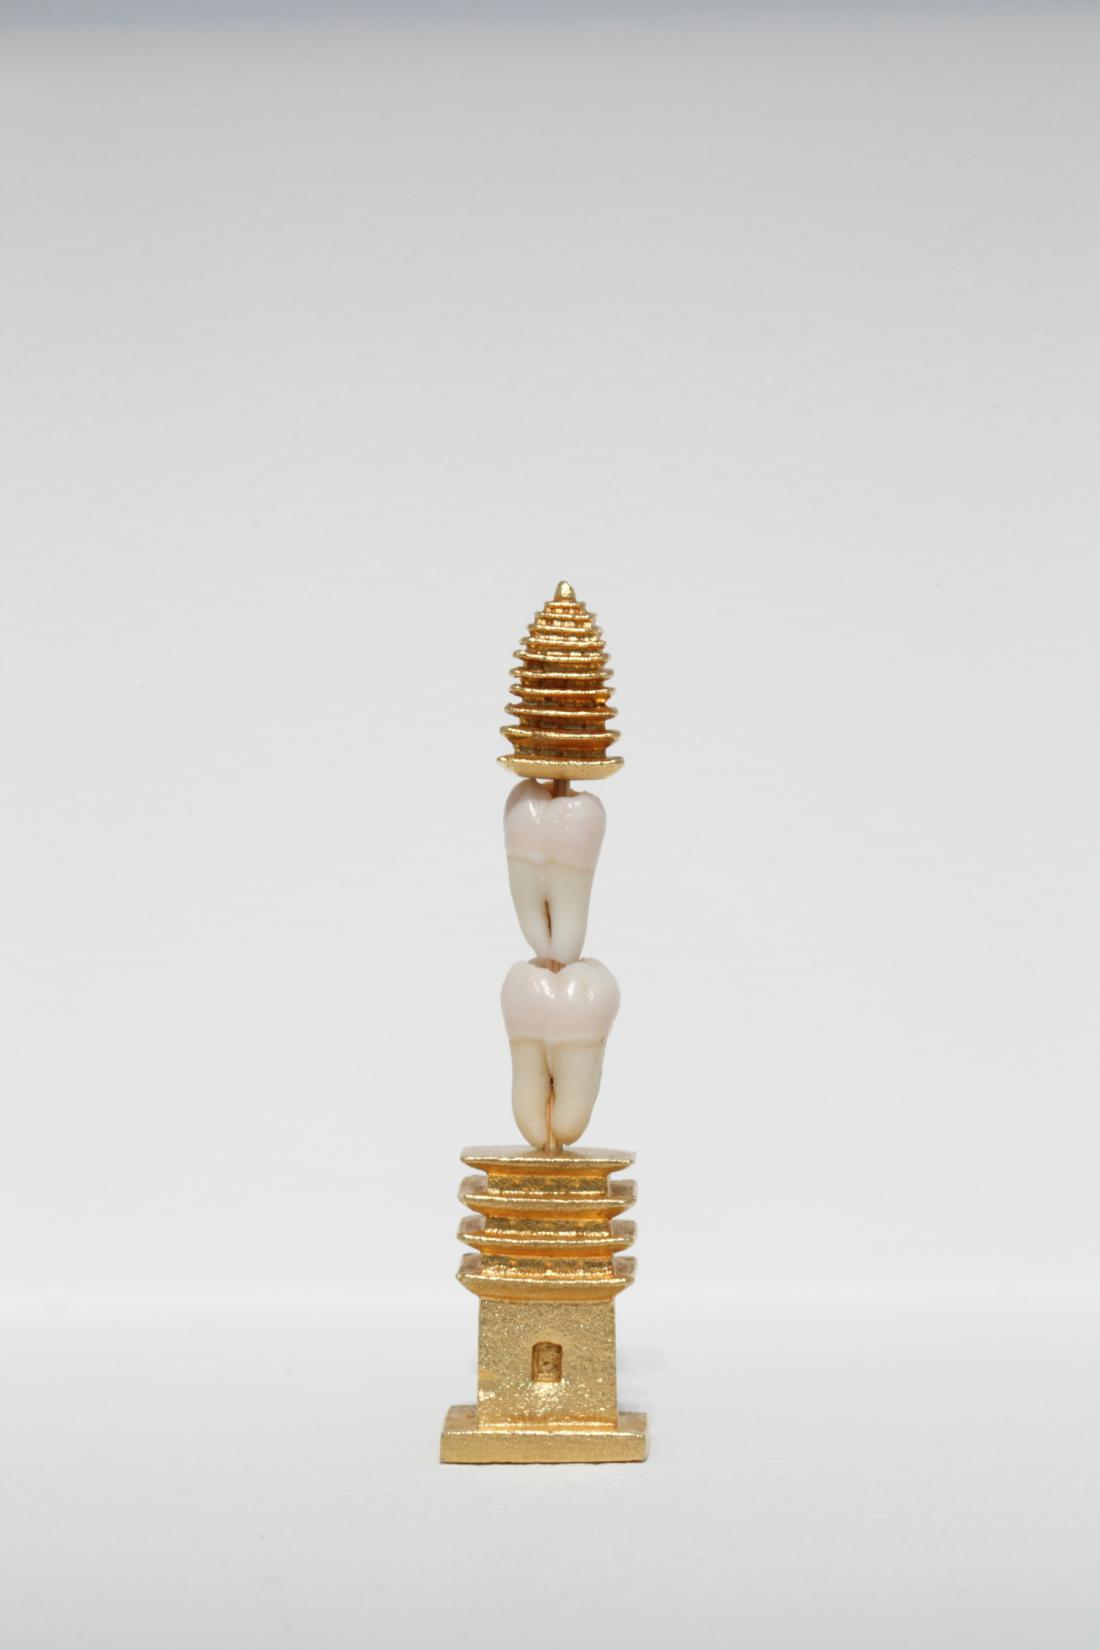 """Wisdom Tower (a pretty girl),"" 2013, tooth, gold, copper, bamboo stick, 8.25 x 2.1 x 2.1 cm<br>Photo: Keizo Kioku"